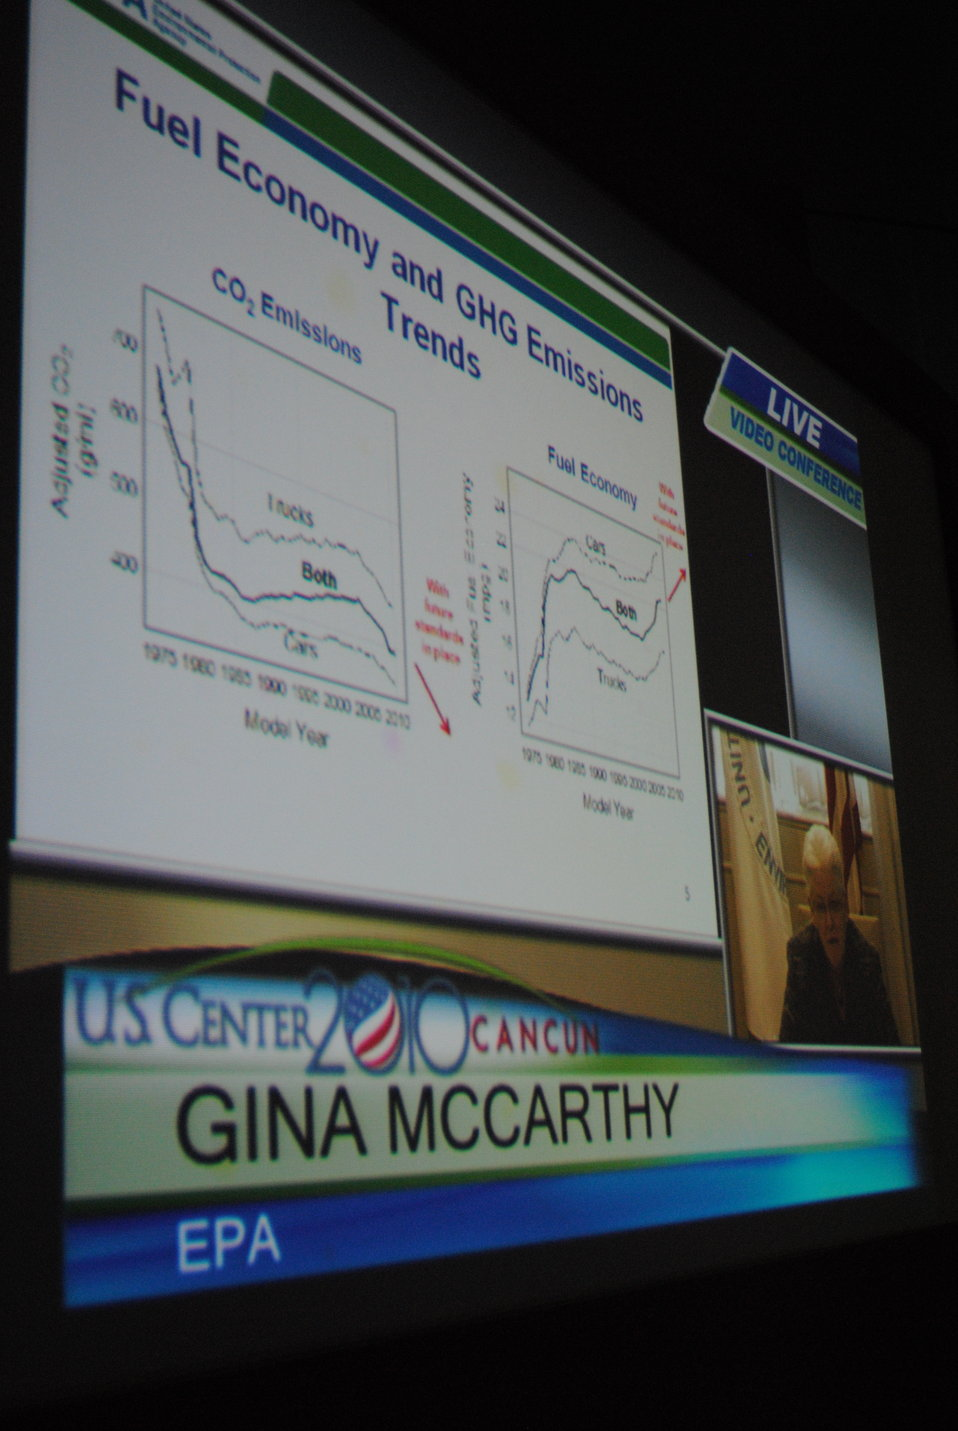 Gina McCarthy of the EPA Addresses the U.S. Center